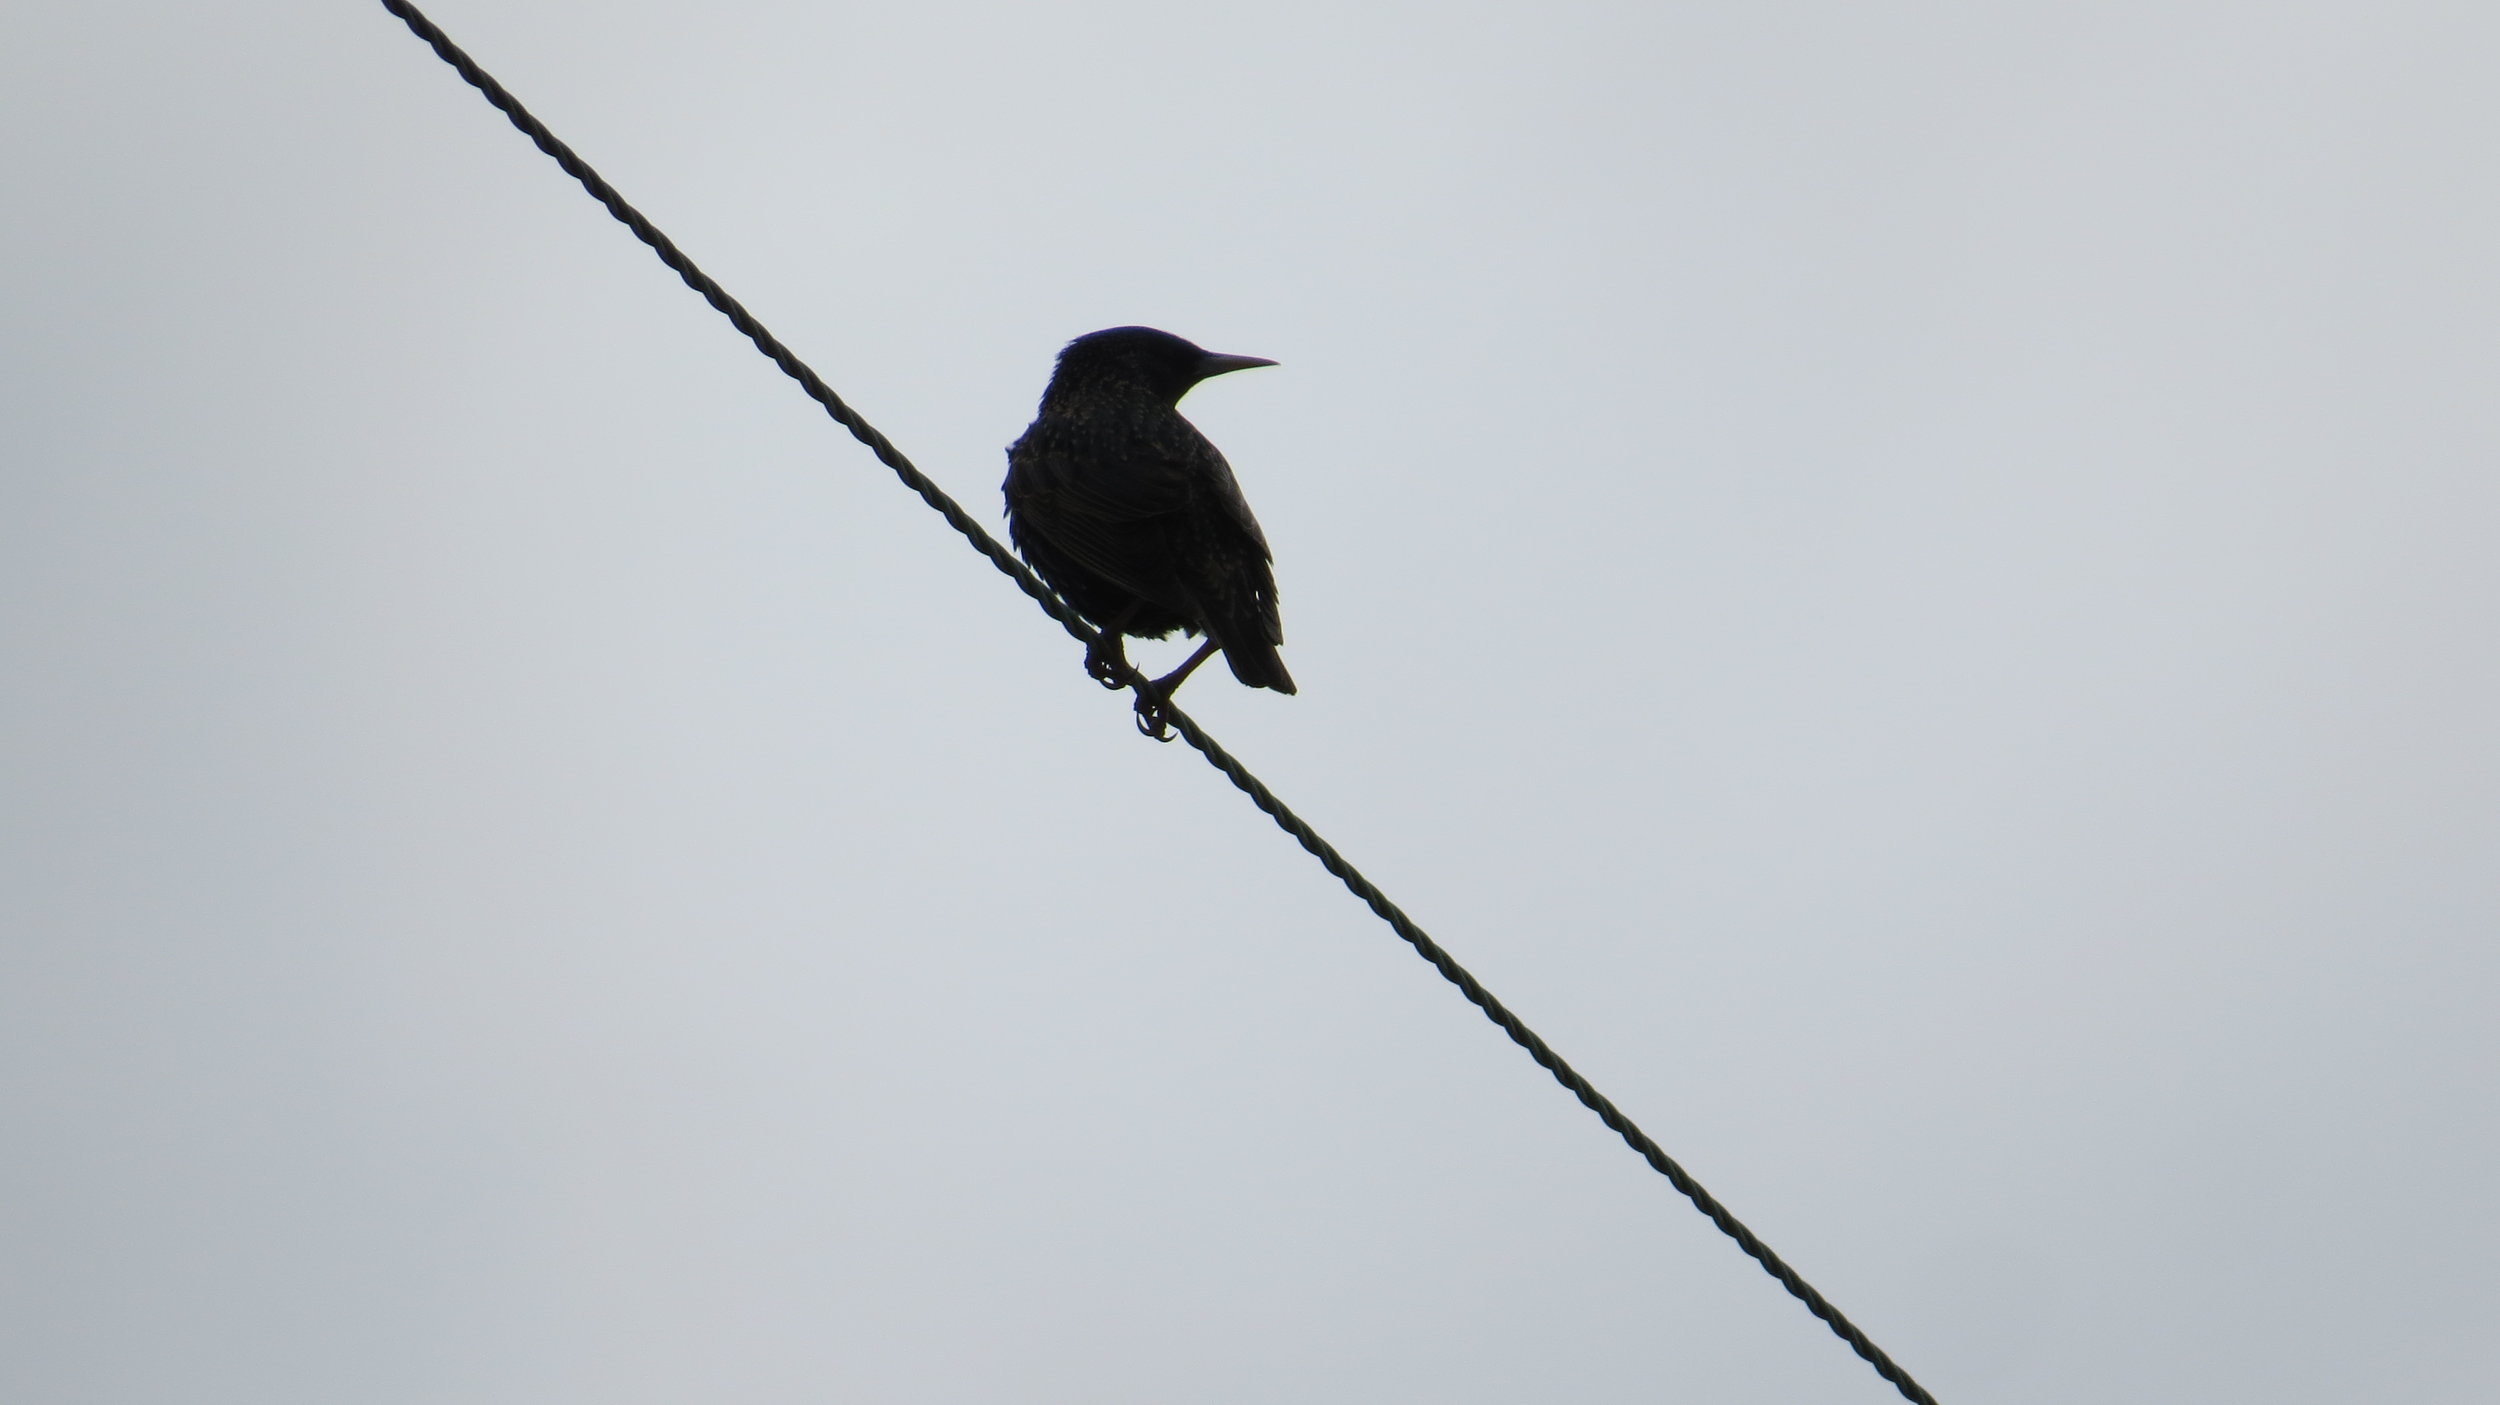 Starling Silhouette